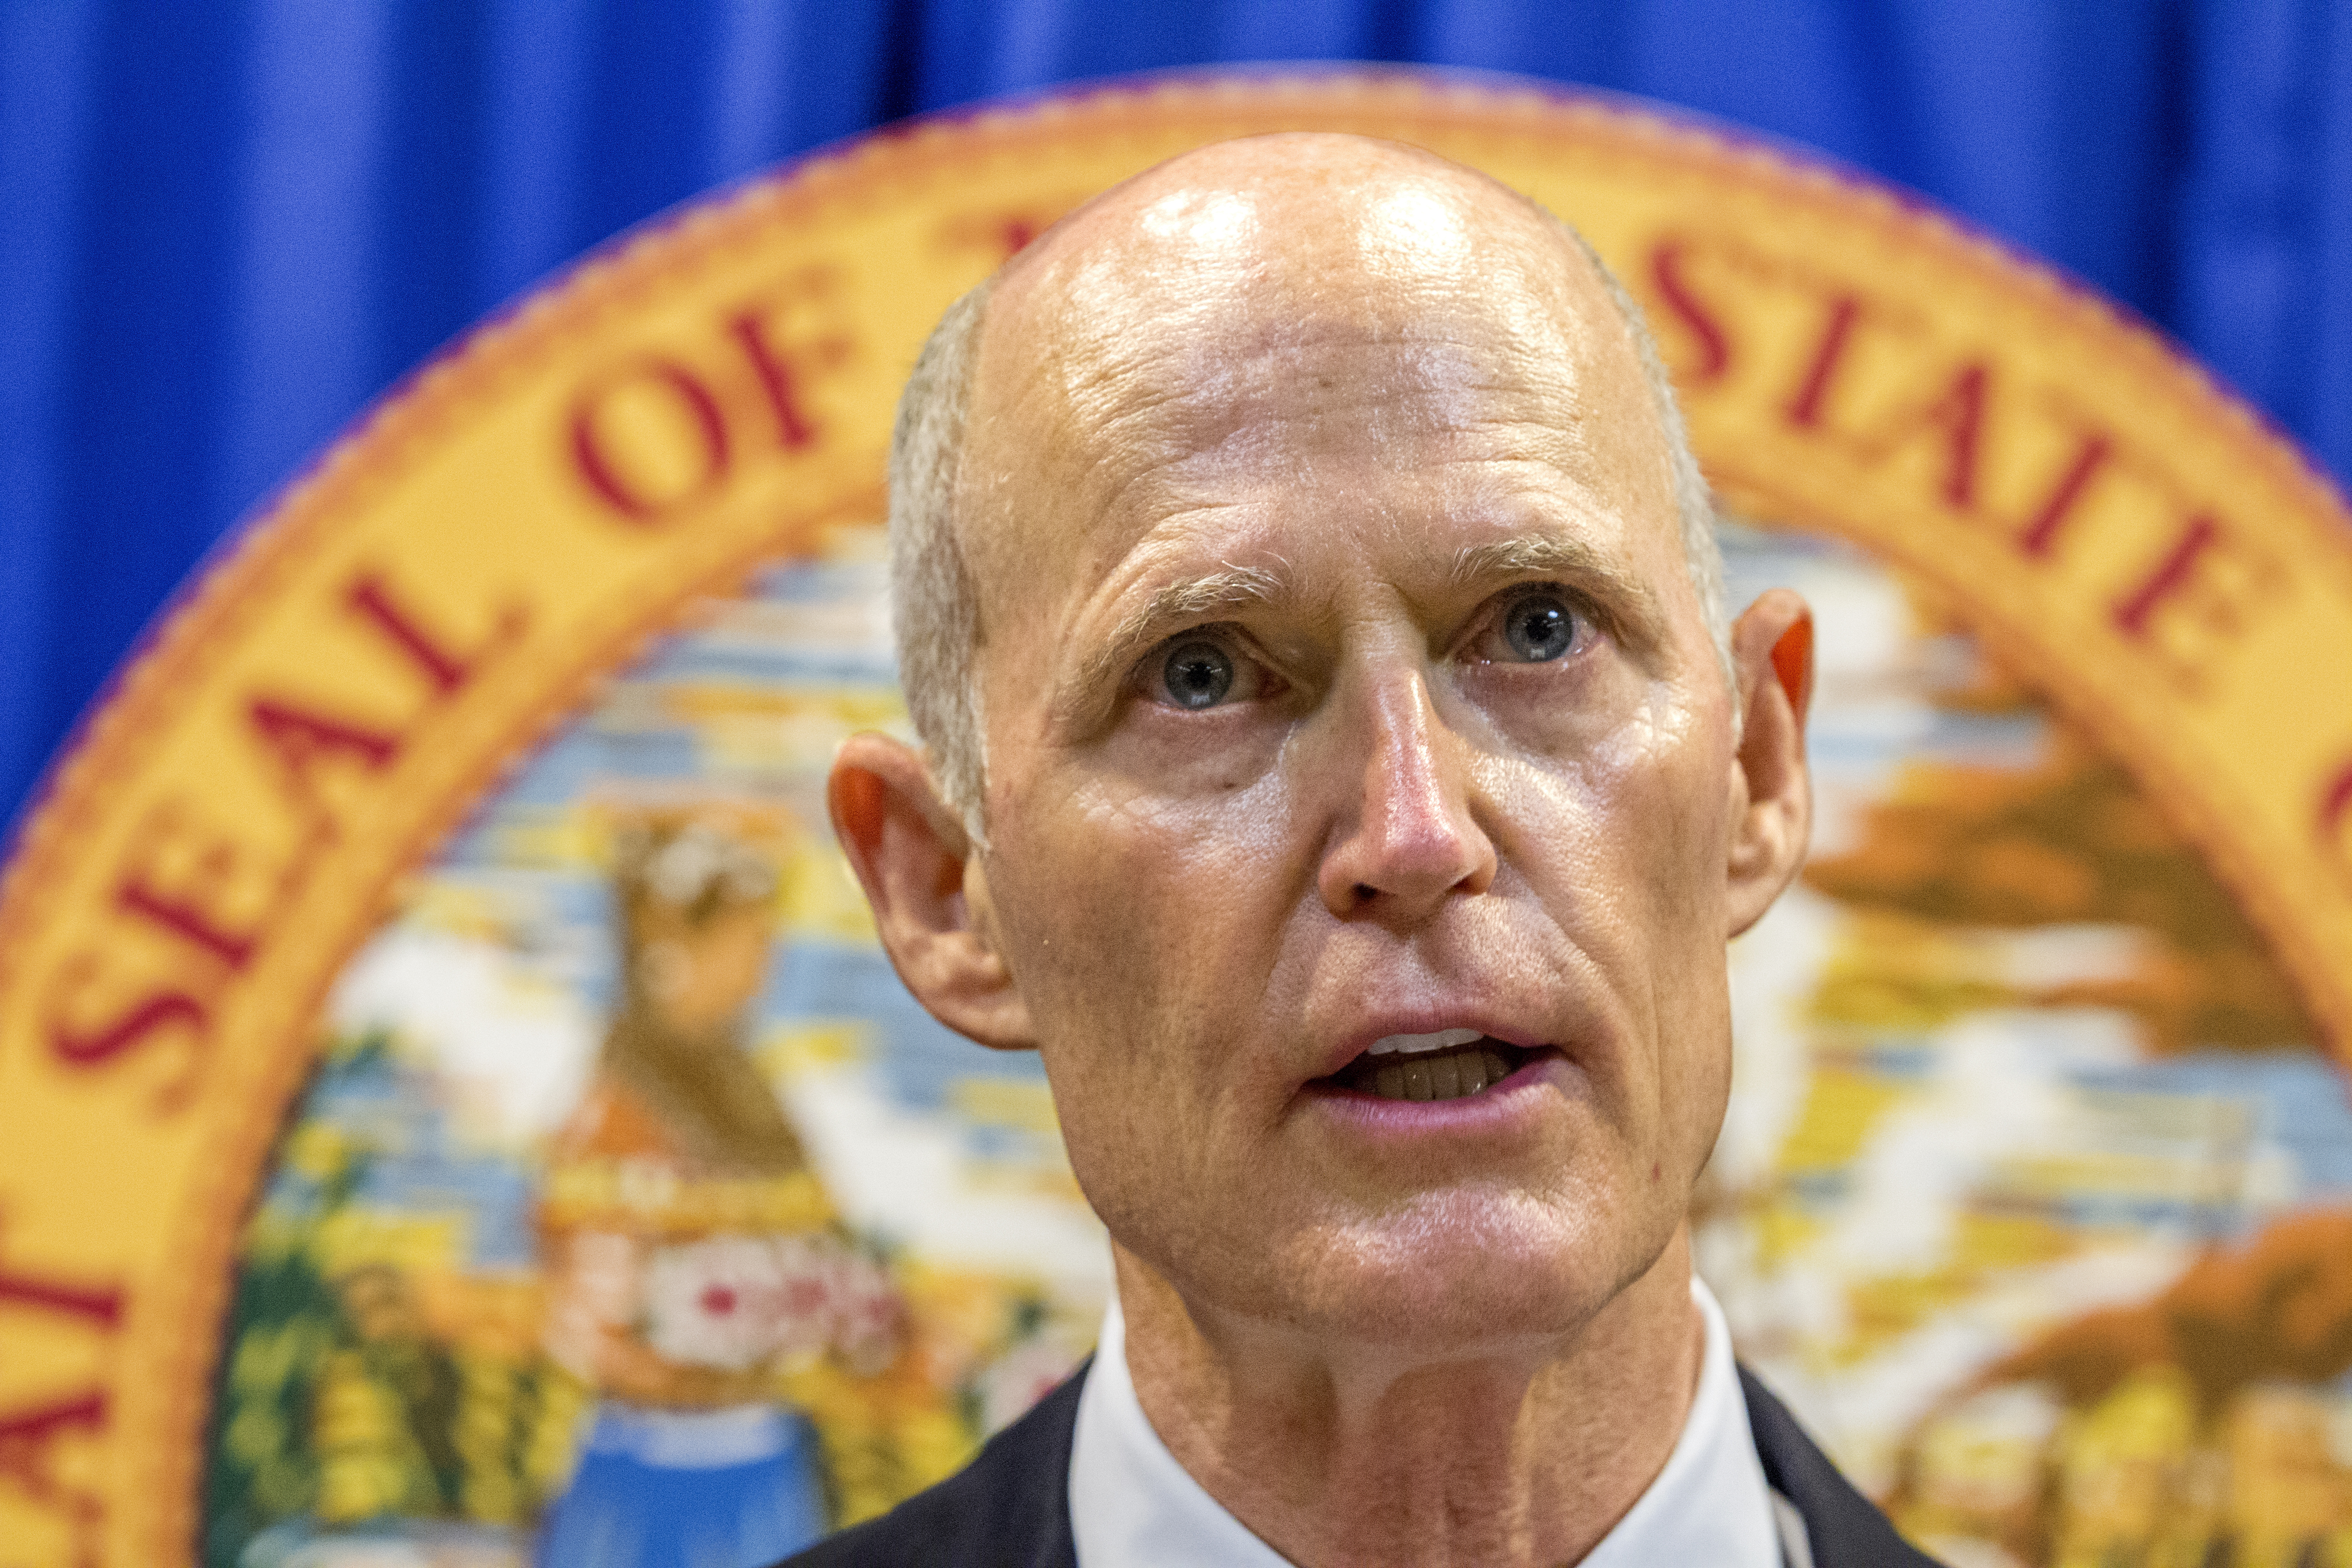 Florida Governor Rick Scott lays out his school safety proposal during a press conference at the Florida Capitol in Tallahassee, Fla.,  Feb. 23, 2018. Scott proposed banning the sale of firearms to anyone younger than 21 as part of a plan to prevent ...